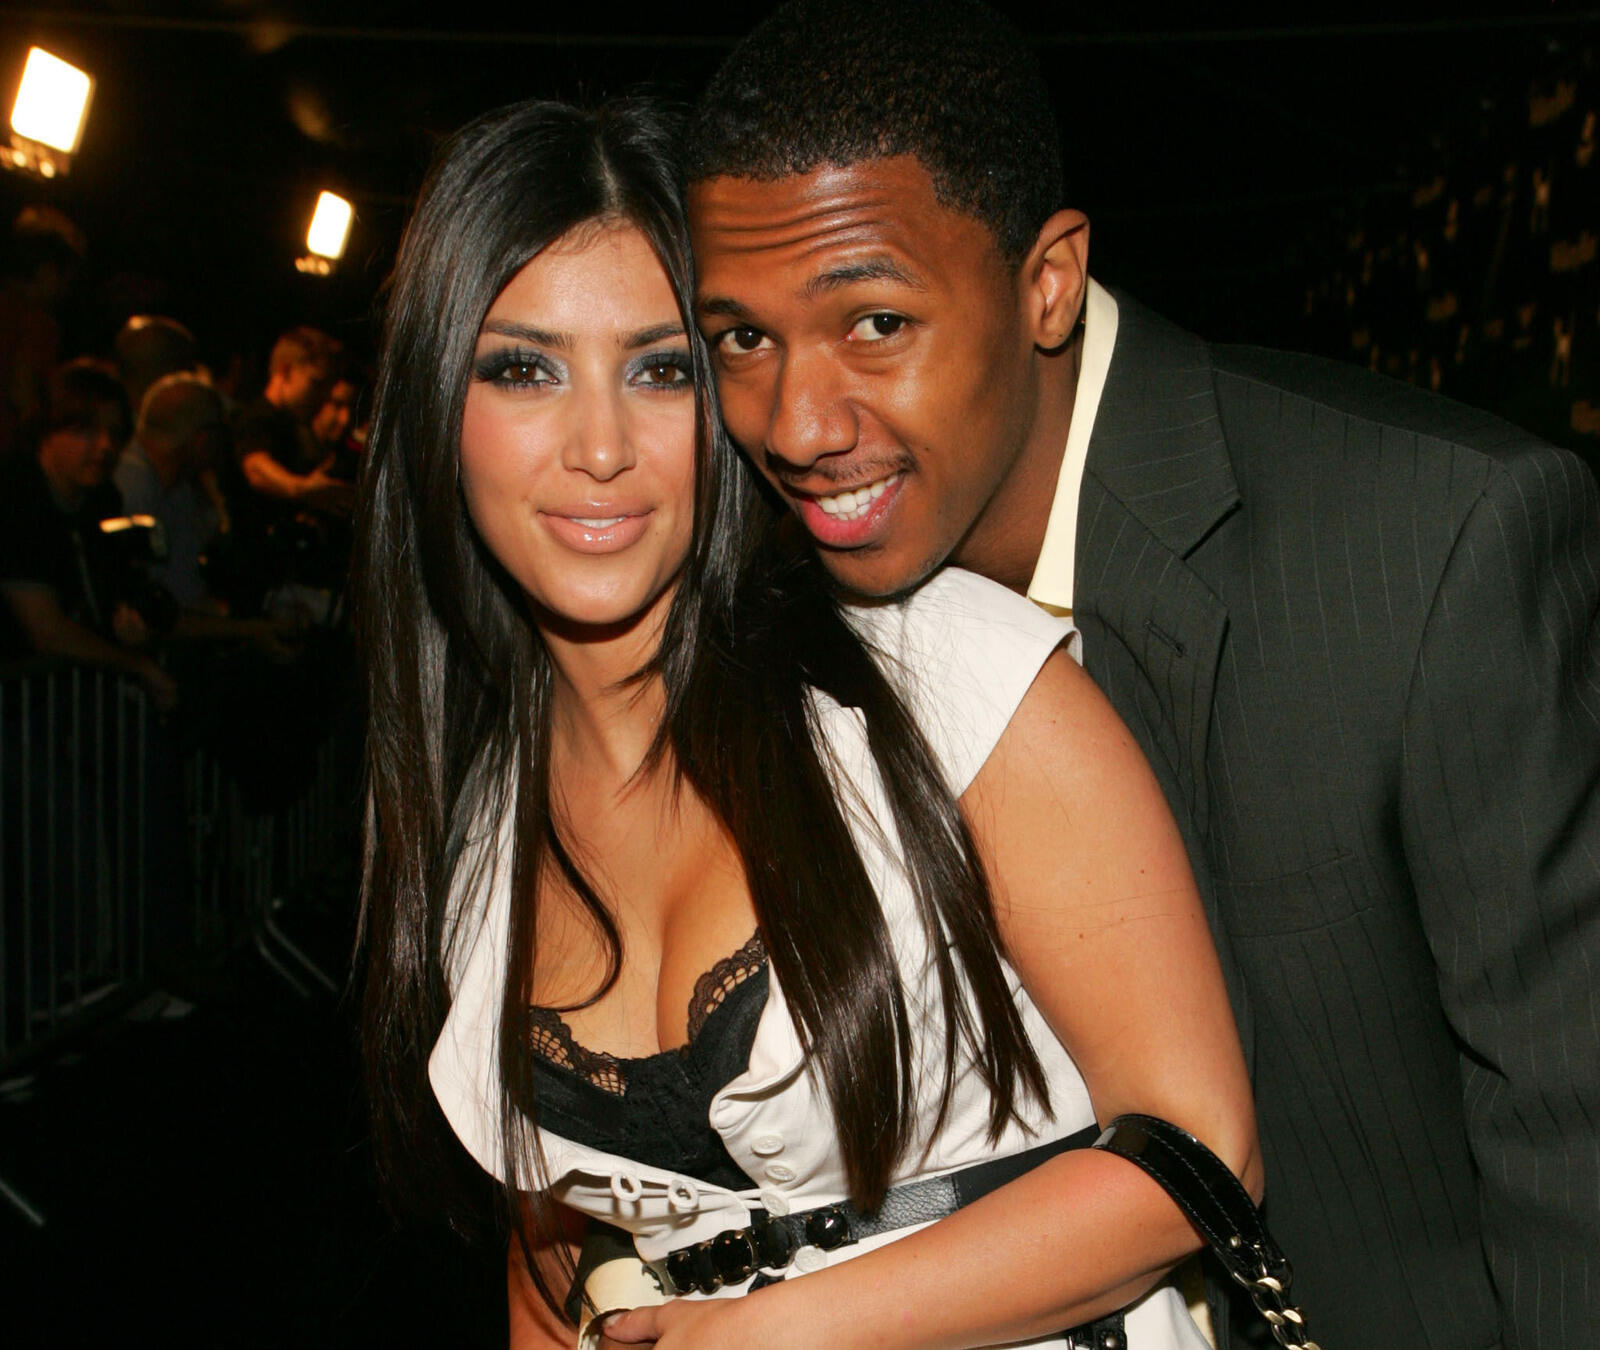 """23: 10/06/21 - Nick Cannon Reveals His Ex, Kim Kardashian, """"Broke"""" His Heart When She Denied Having A Sex Tape With Ray J"""